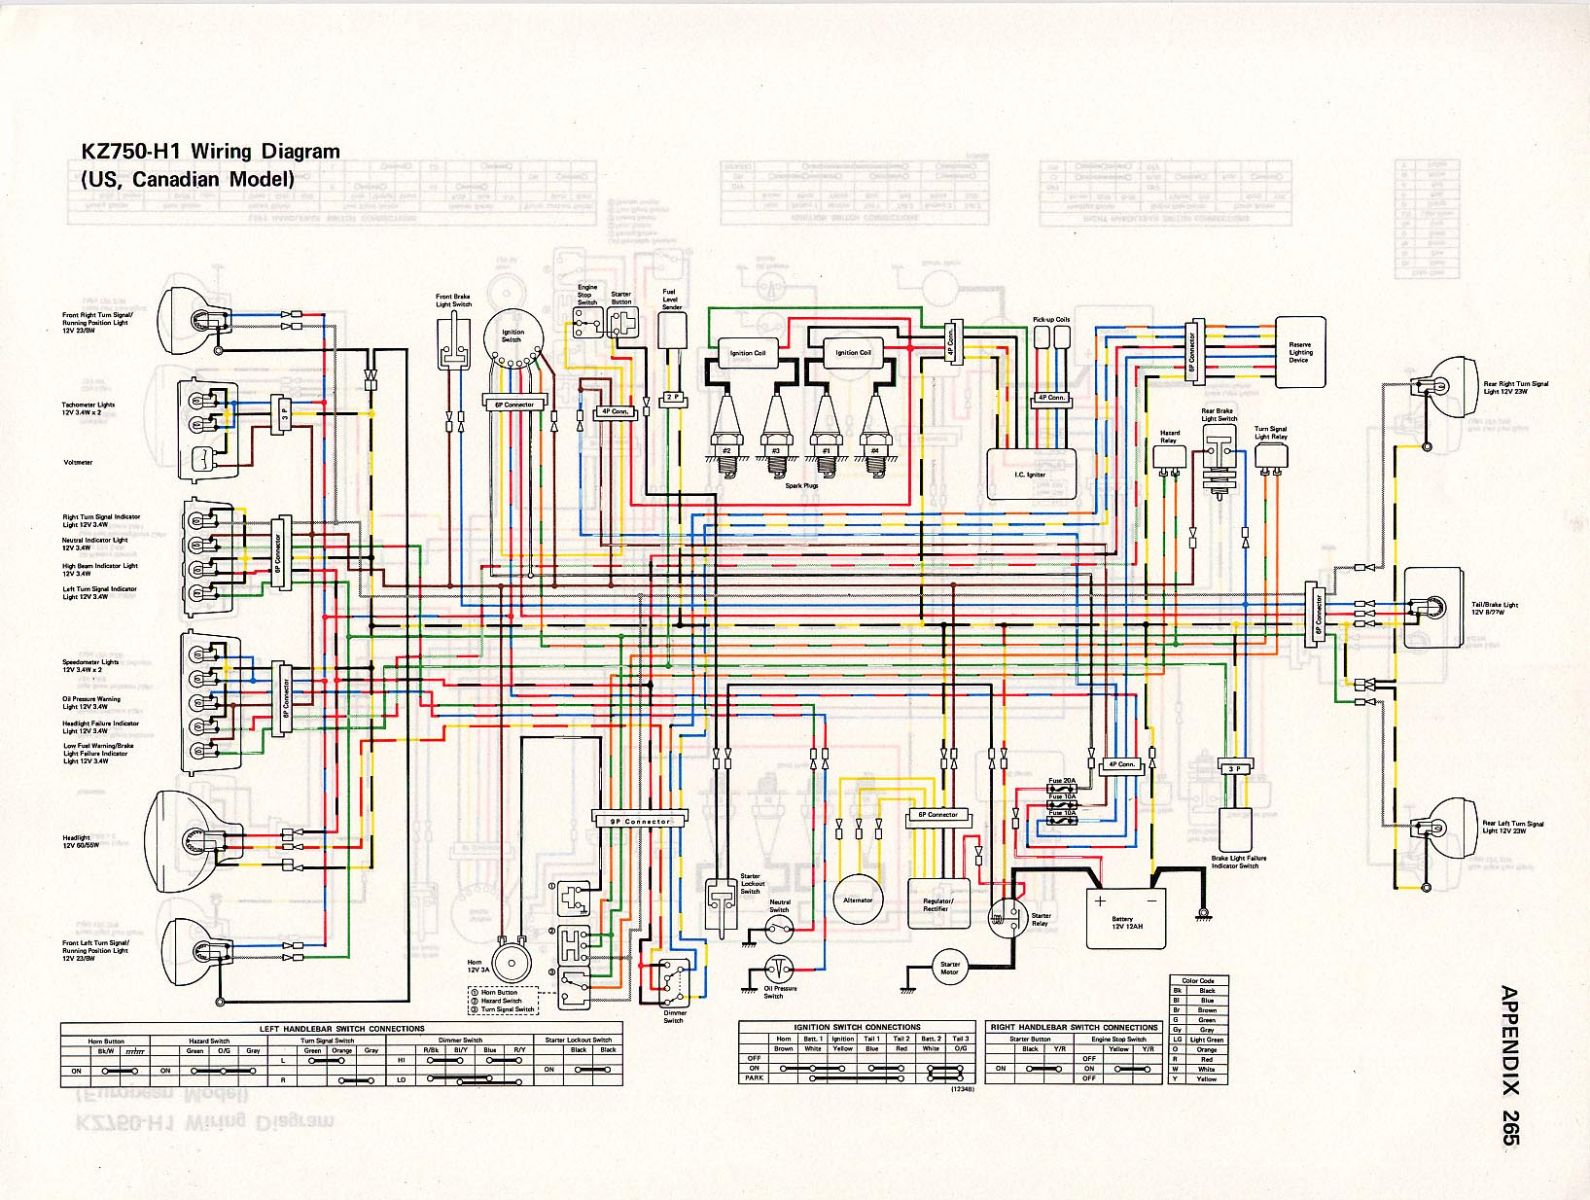 hight resolution of kawasaki kz750 ltd wiring diagram wiring diagram database kawasaki bayou wiring diagram 1983 kawasaki wiring